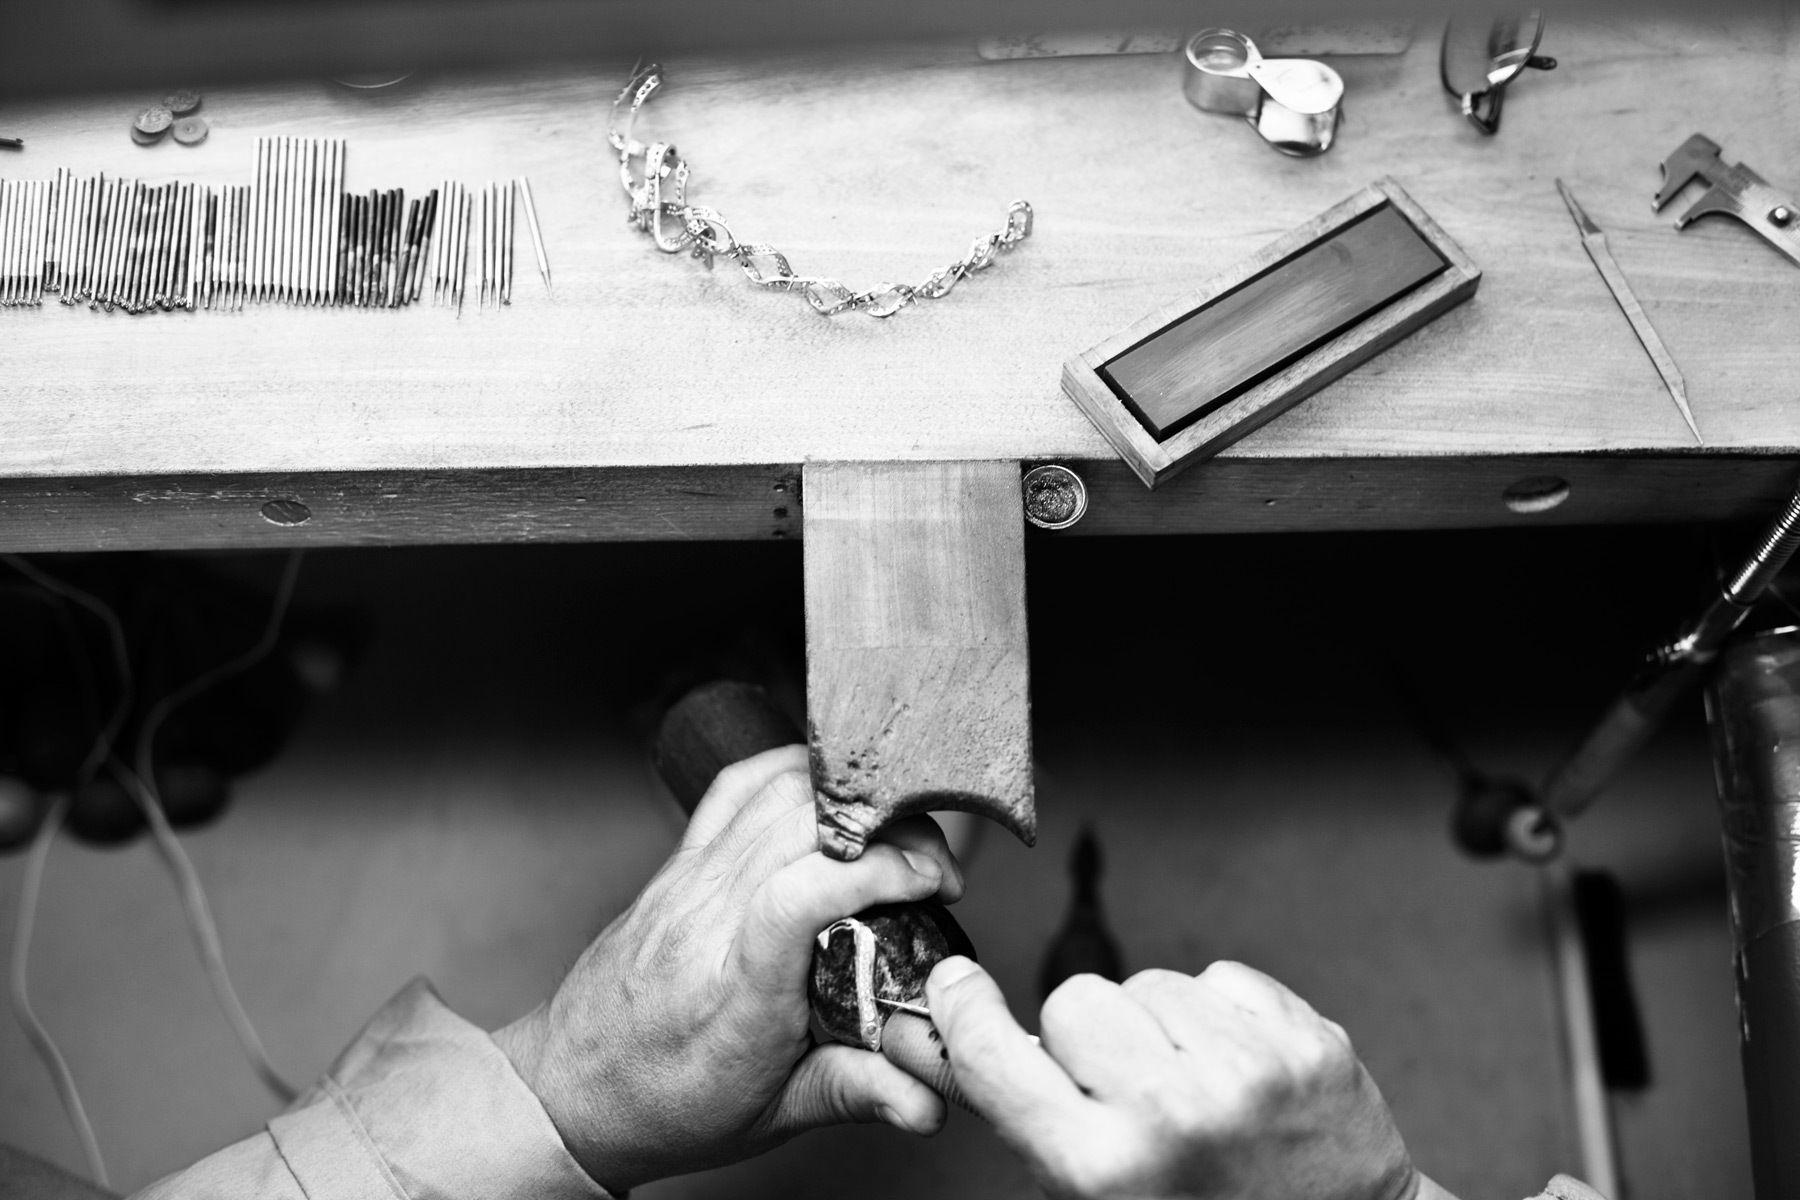 Over the past 7 or 8 years I have worked extensively with Tiffany & Co. in New York photographing the designers and makers of their jewelry. This is a small selection of some of the work, photographed at their workshops in Manhattan.